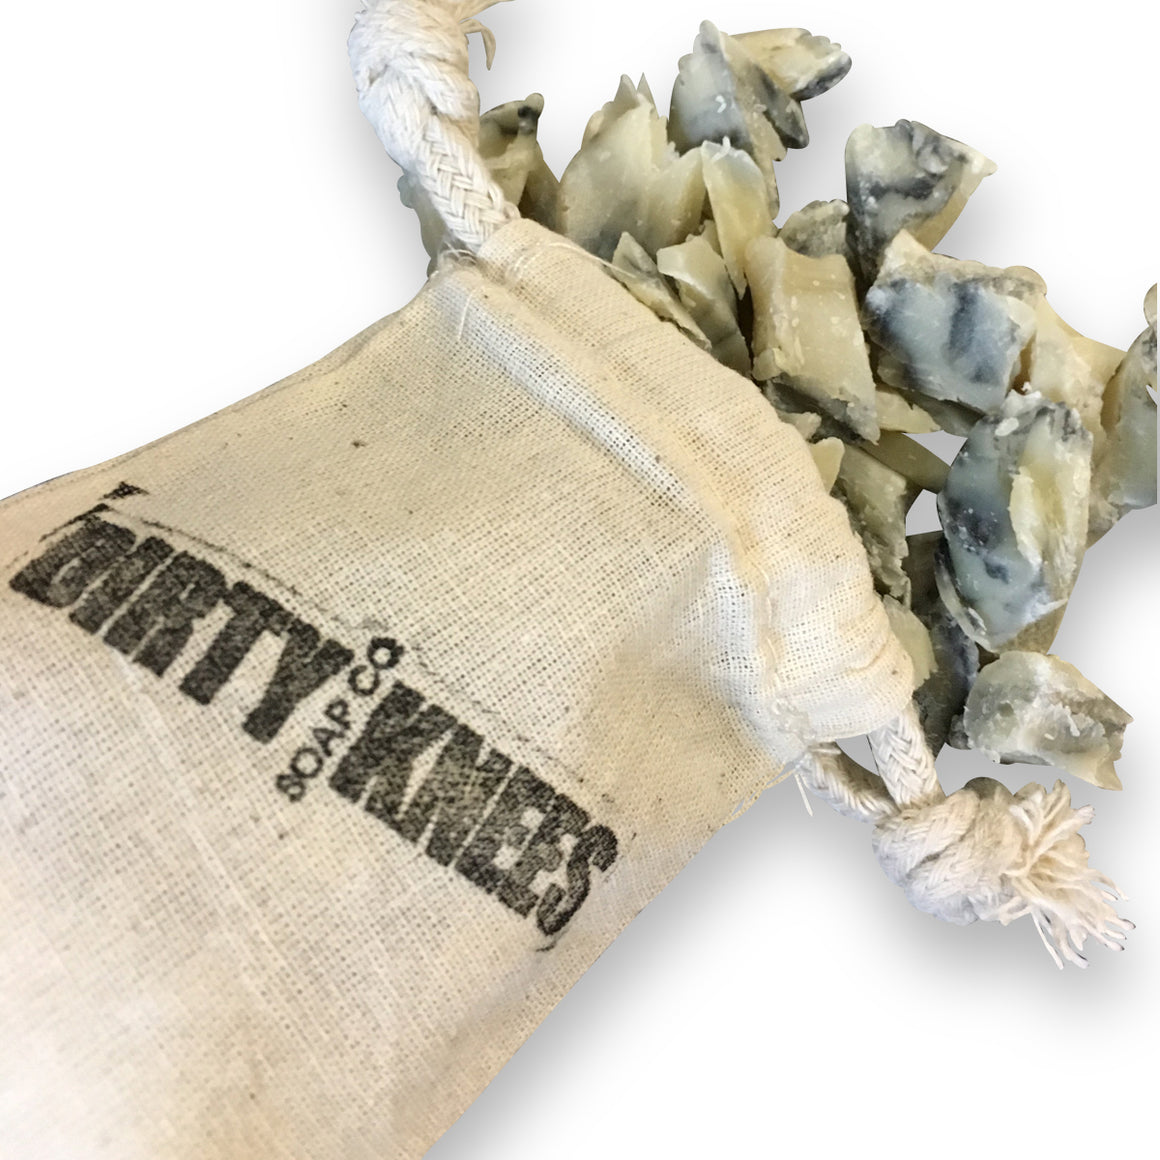 NEW! Dirty Knees Soap Sachet - Dirty Knees Soap Co.